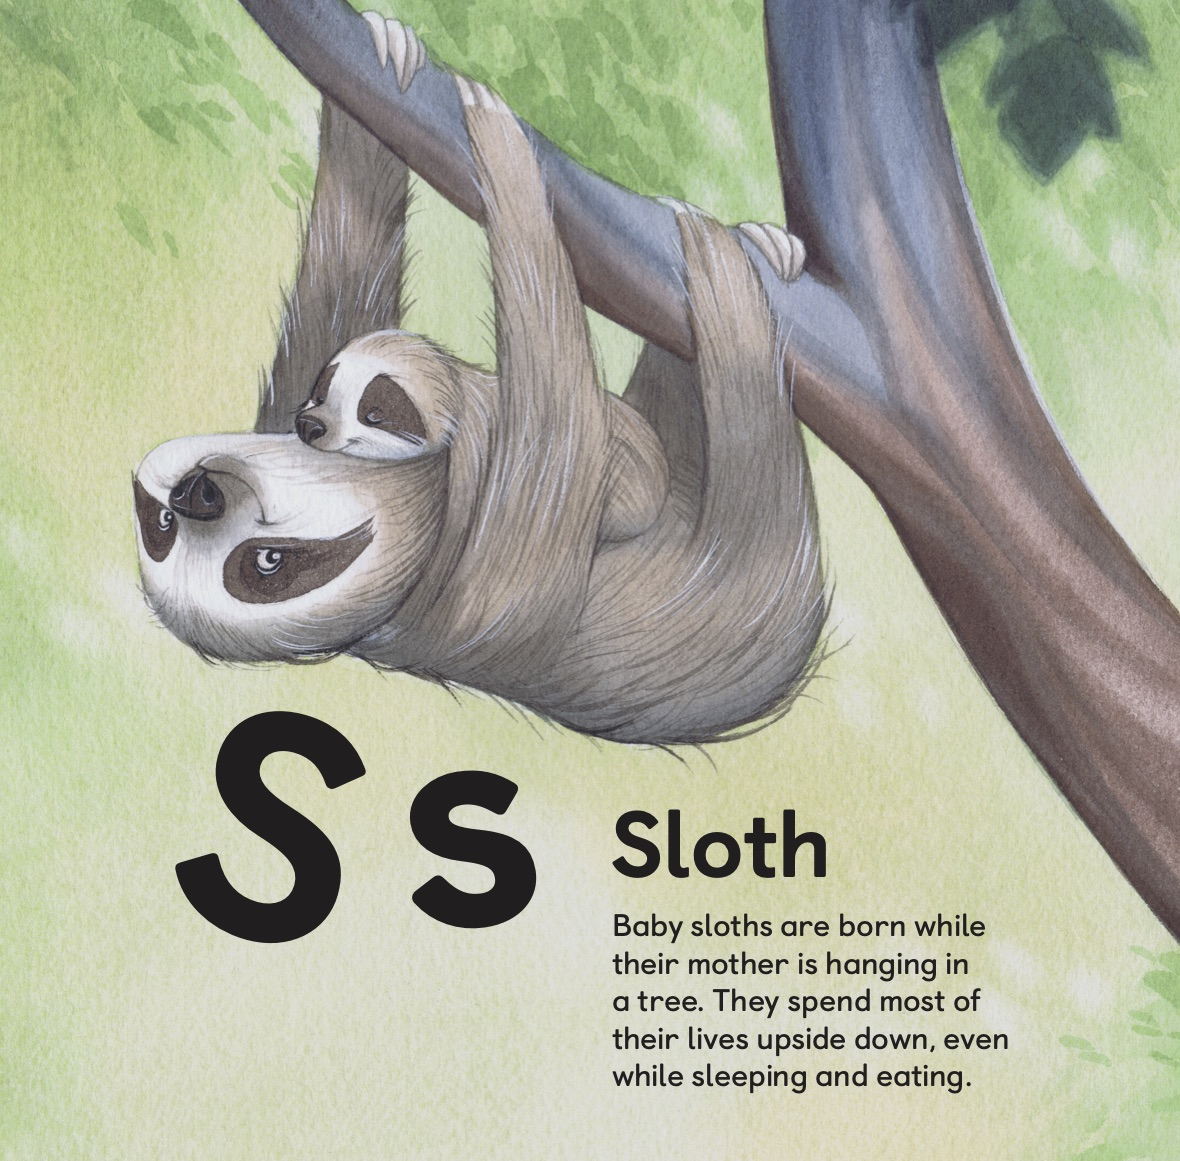 Sloth mom hanging with baby sloth